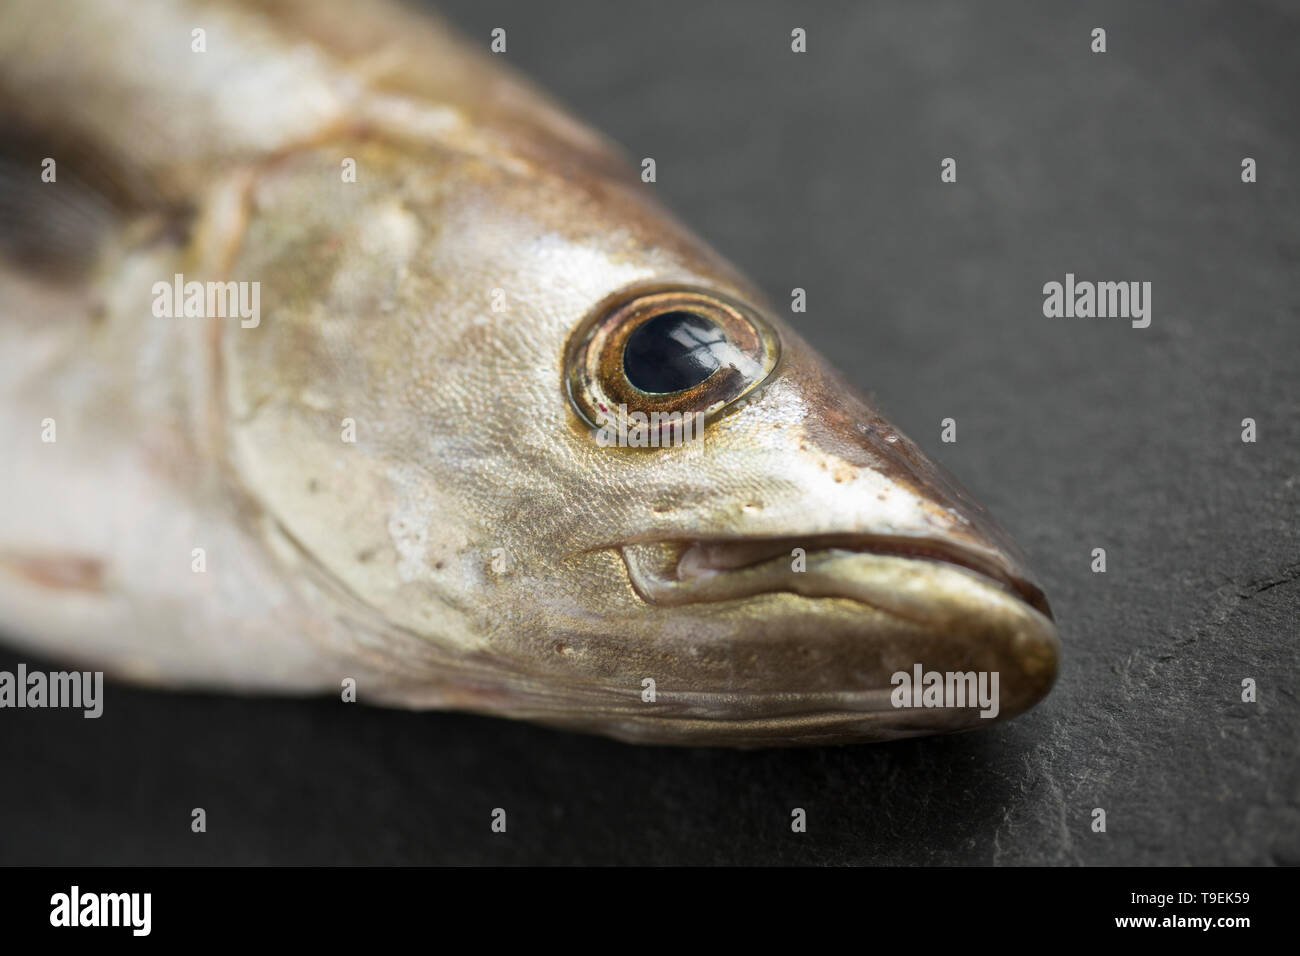 A raw, uncooked Pollack, Pollachius pollachius, that was caught on rod and line boat fishing in th English Channel. Pollack are a common UK seafish an - Stock Image